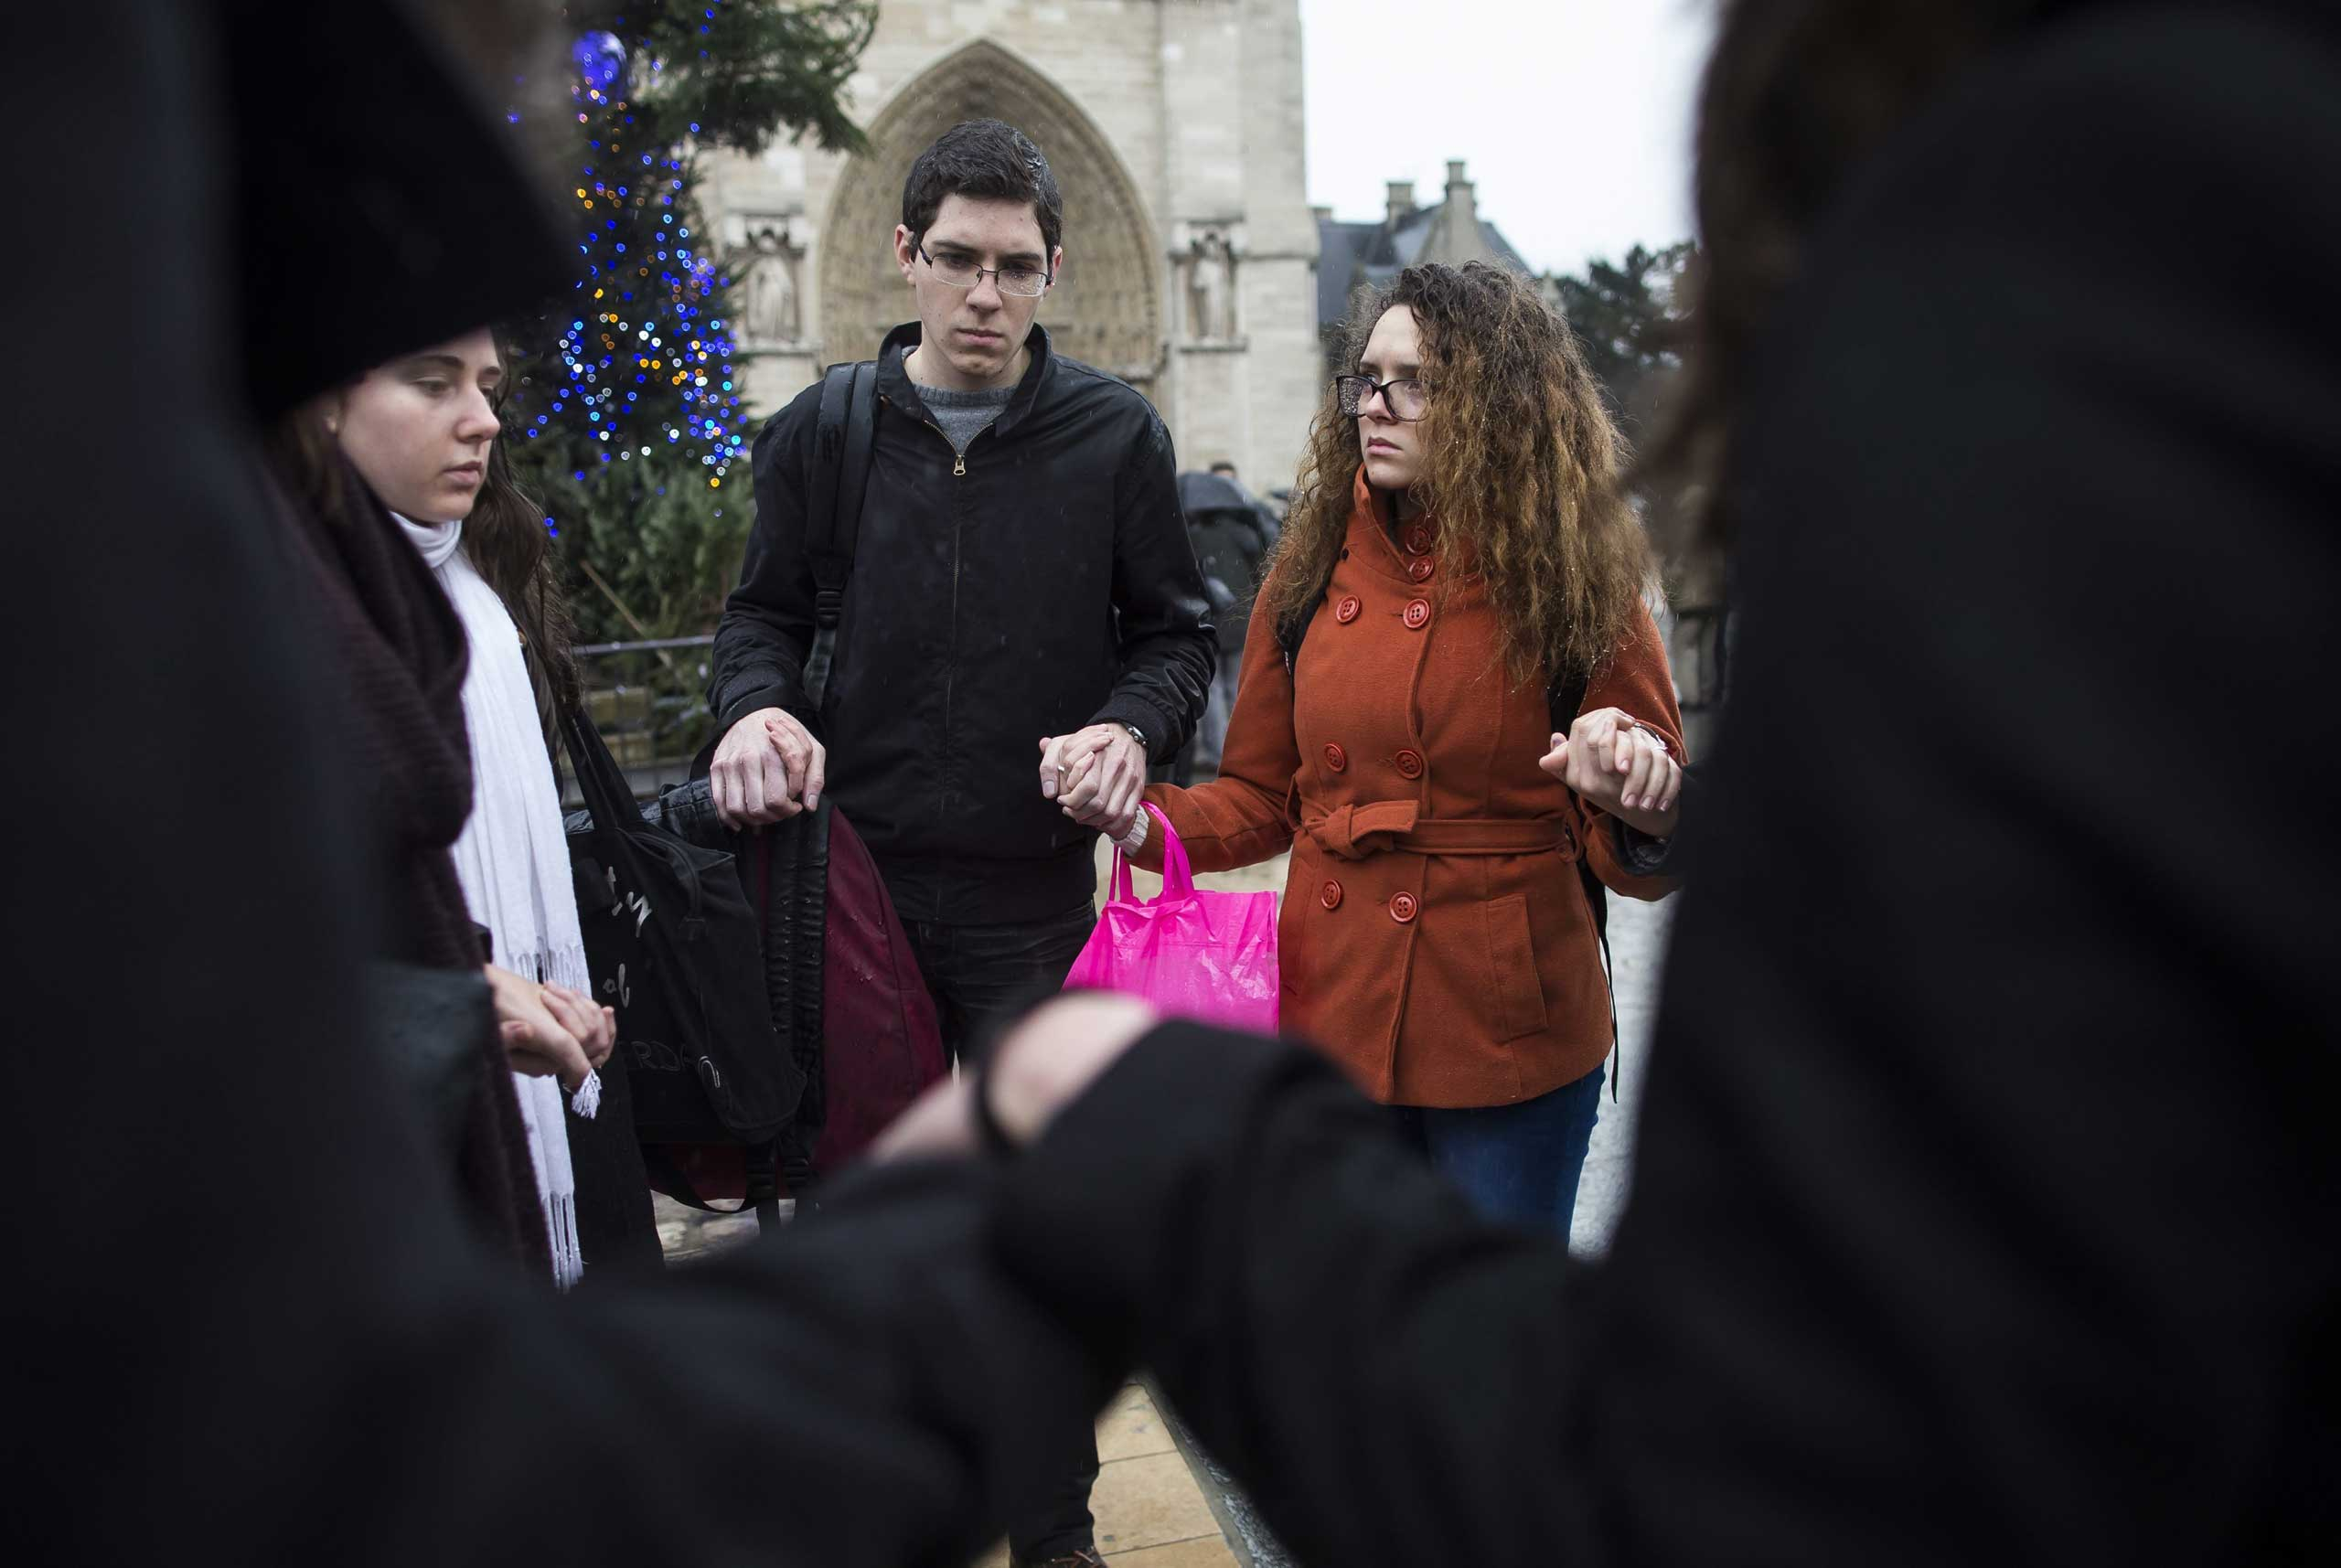 Young Parisians gather for a minute of silence in front of Notre Dame cathedral, Jan 8, 2014.